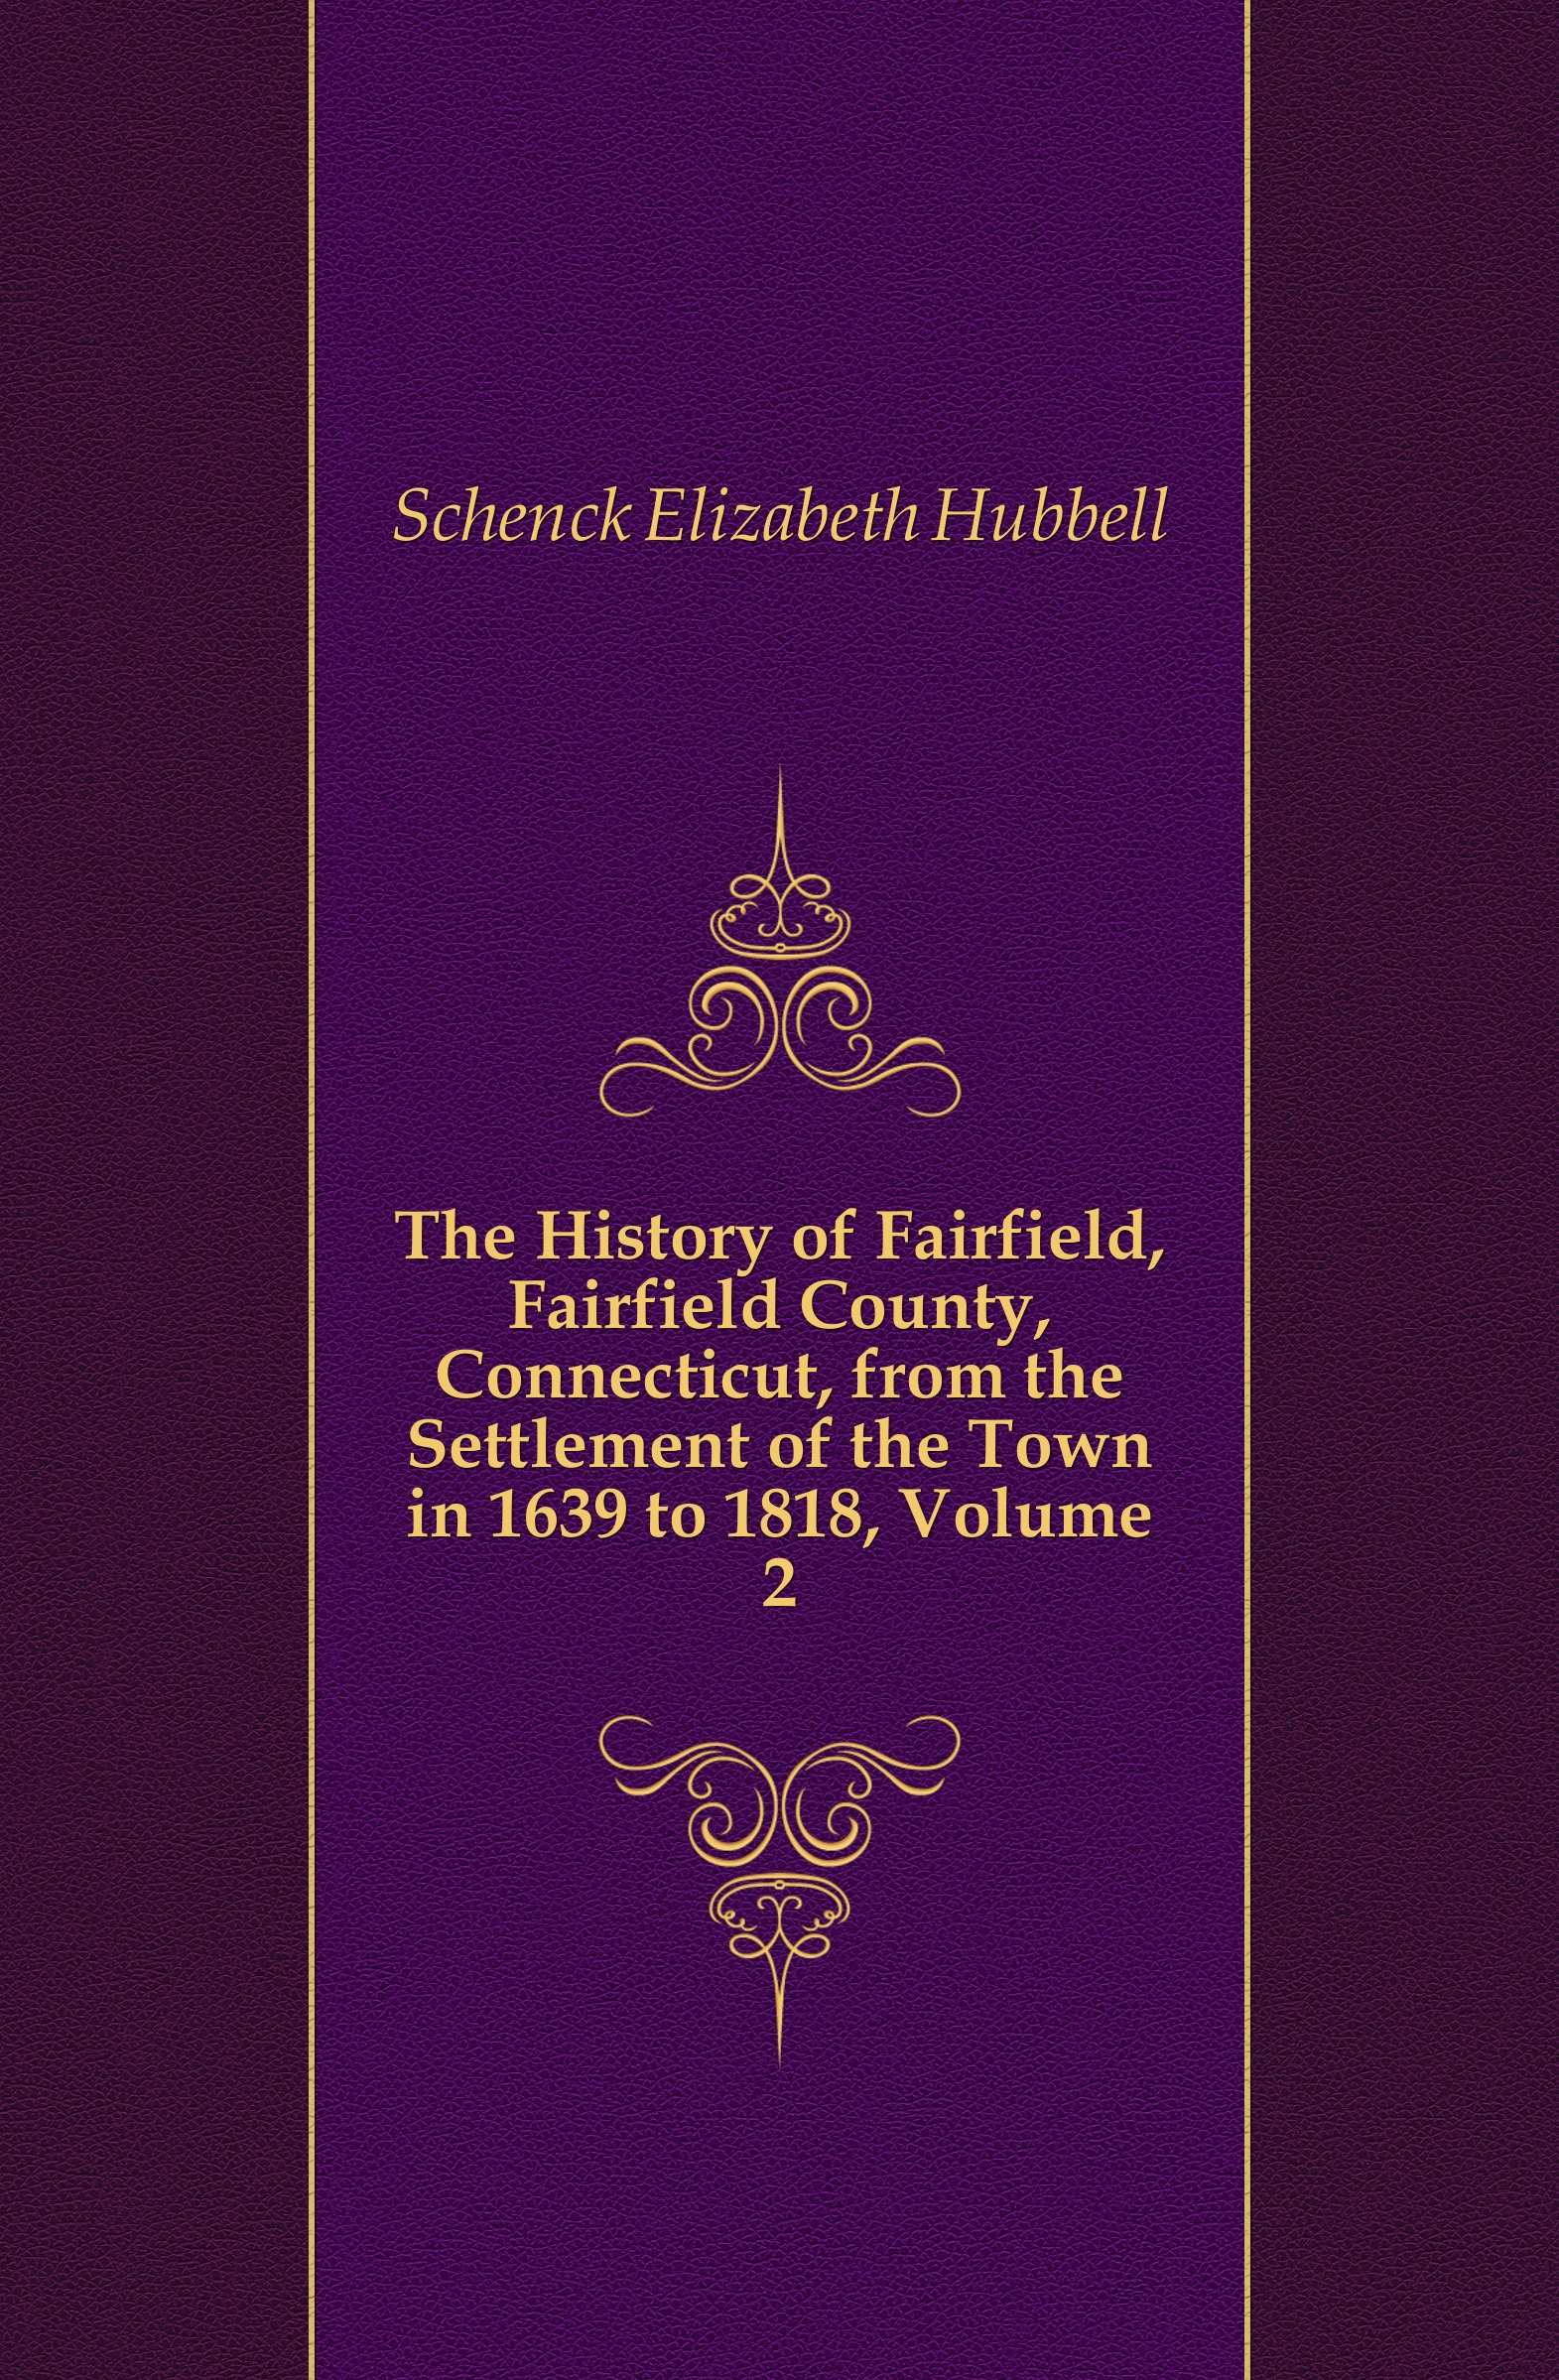 Schenck Elizabeth Hubbell The History of Fairfield, Fairfield County, Connecticut, from the Settlement of the Town in 1639 to 1818, Volume 2 hannah of fairfield